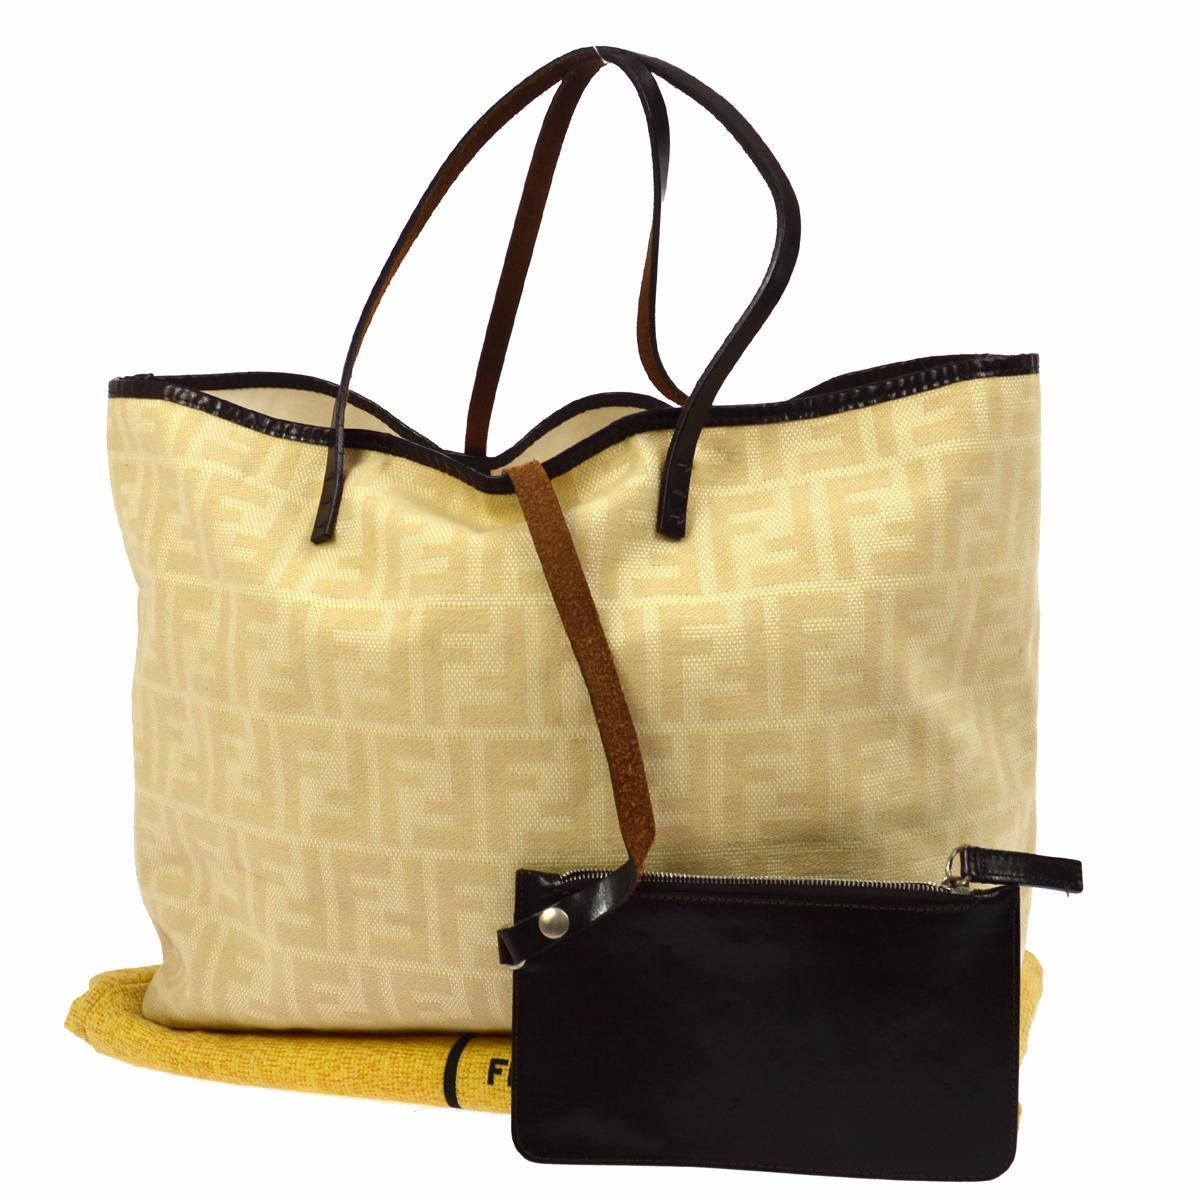 81cc93e106a9 ... promo code beige fendi bags up to 90 off at tradesy rh tradesy com  efe2e de064